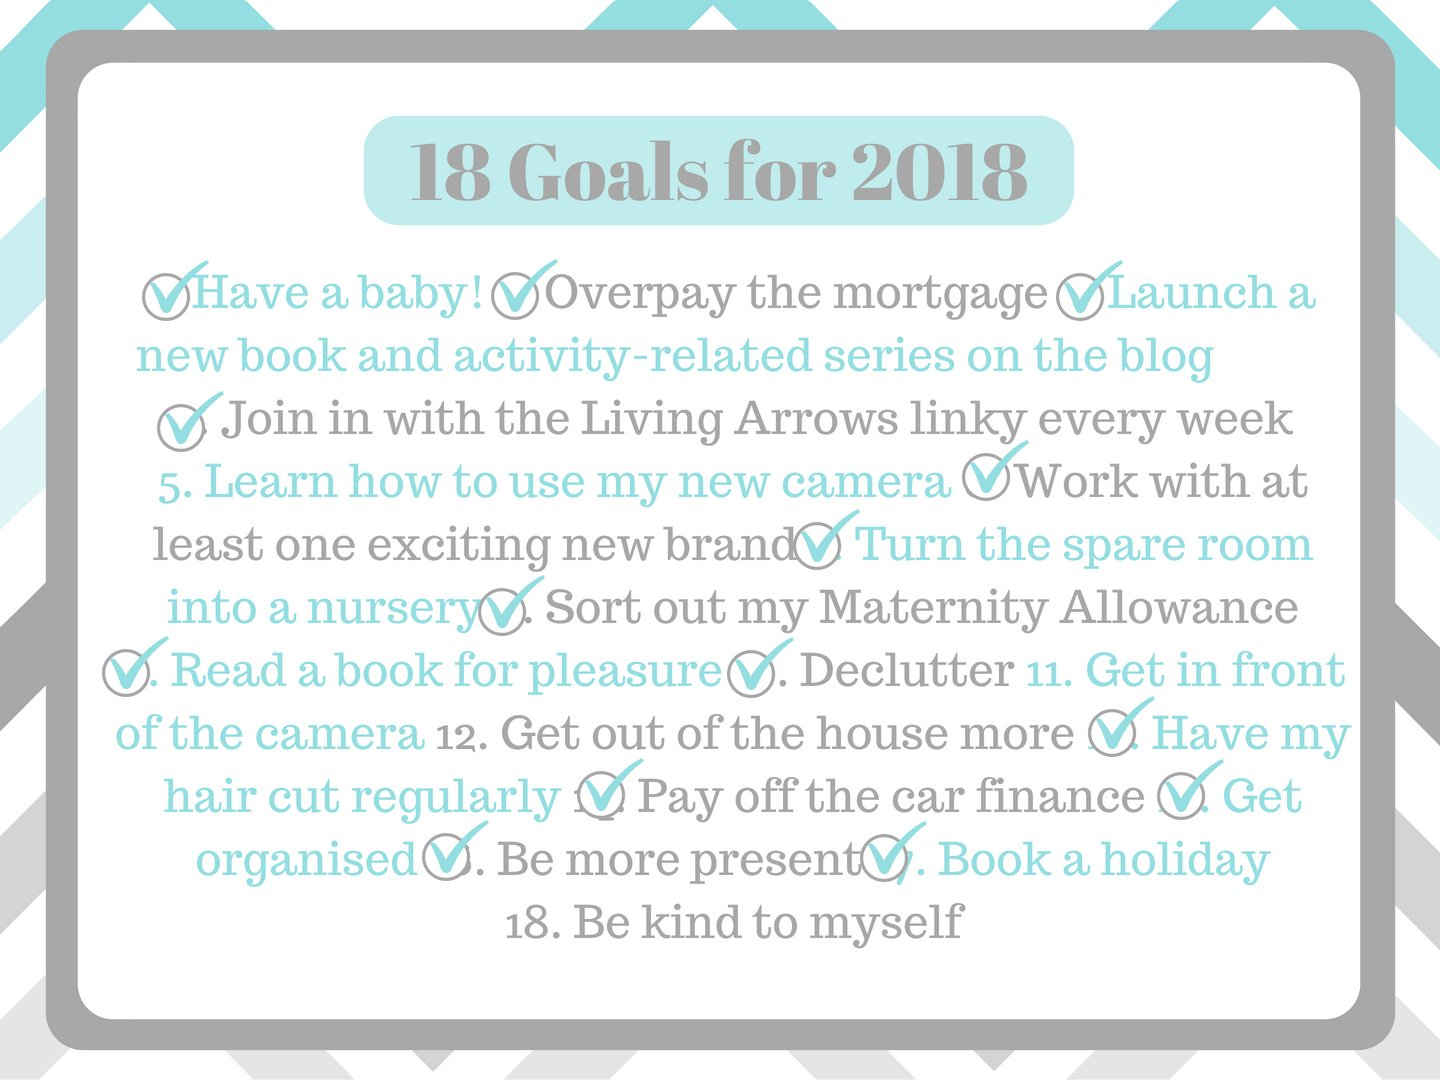 I set myself 18 goals for 2018. These are the ones I've ticked off so far!